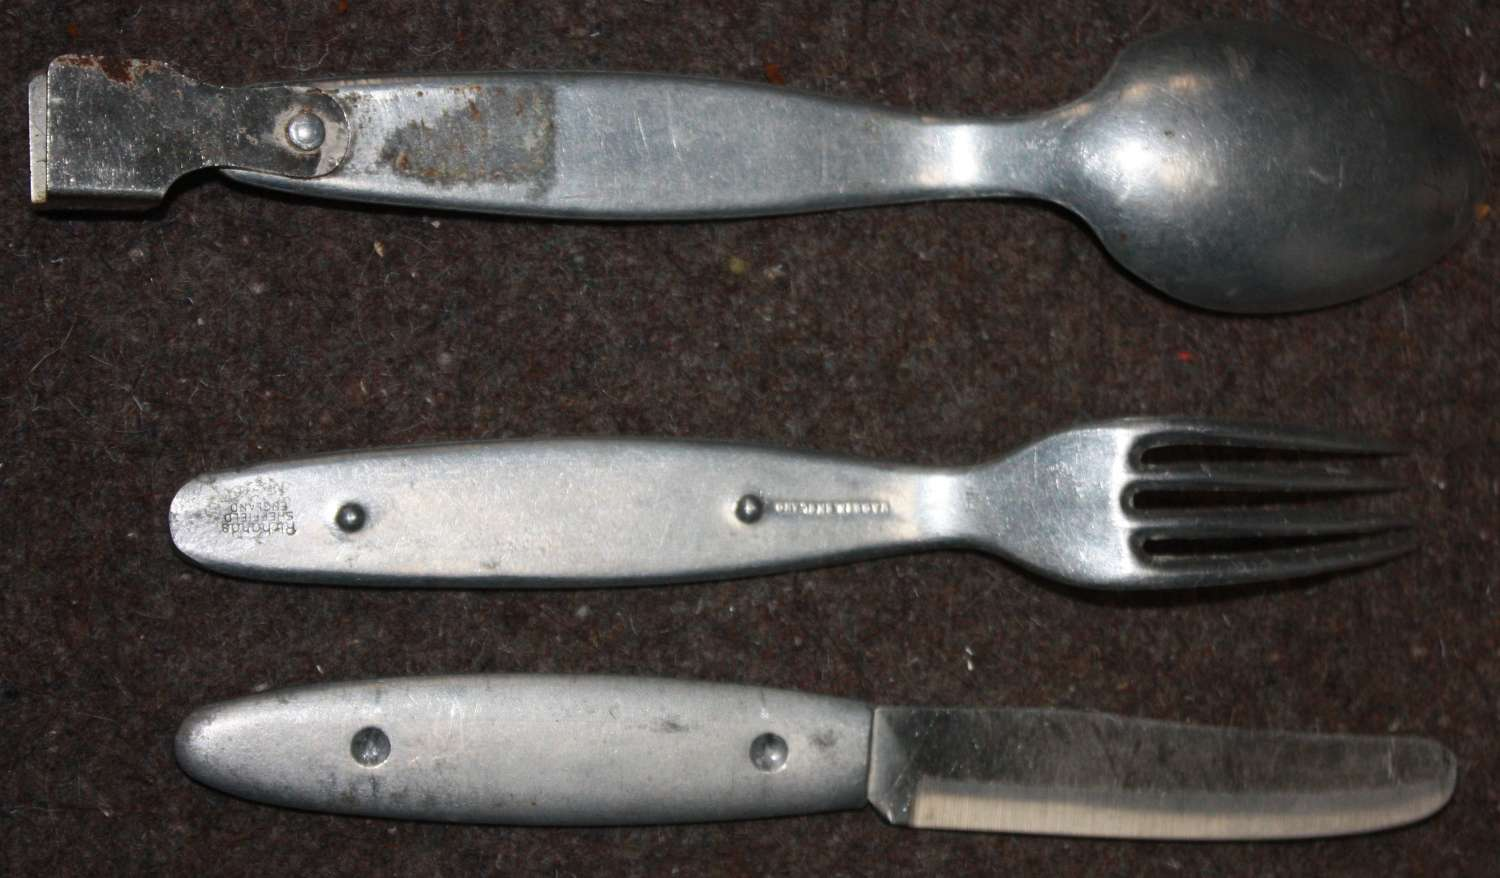 A PRIVATE PURCHASE SET OF THE RICHARTDS CUTLERY WWII STYLE